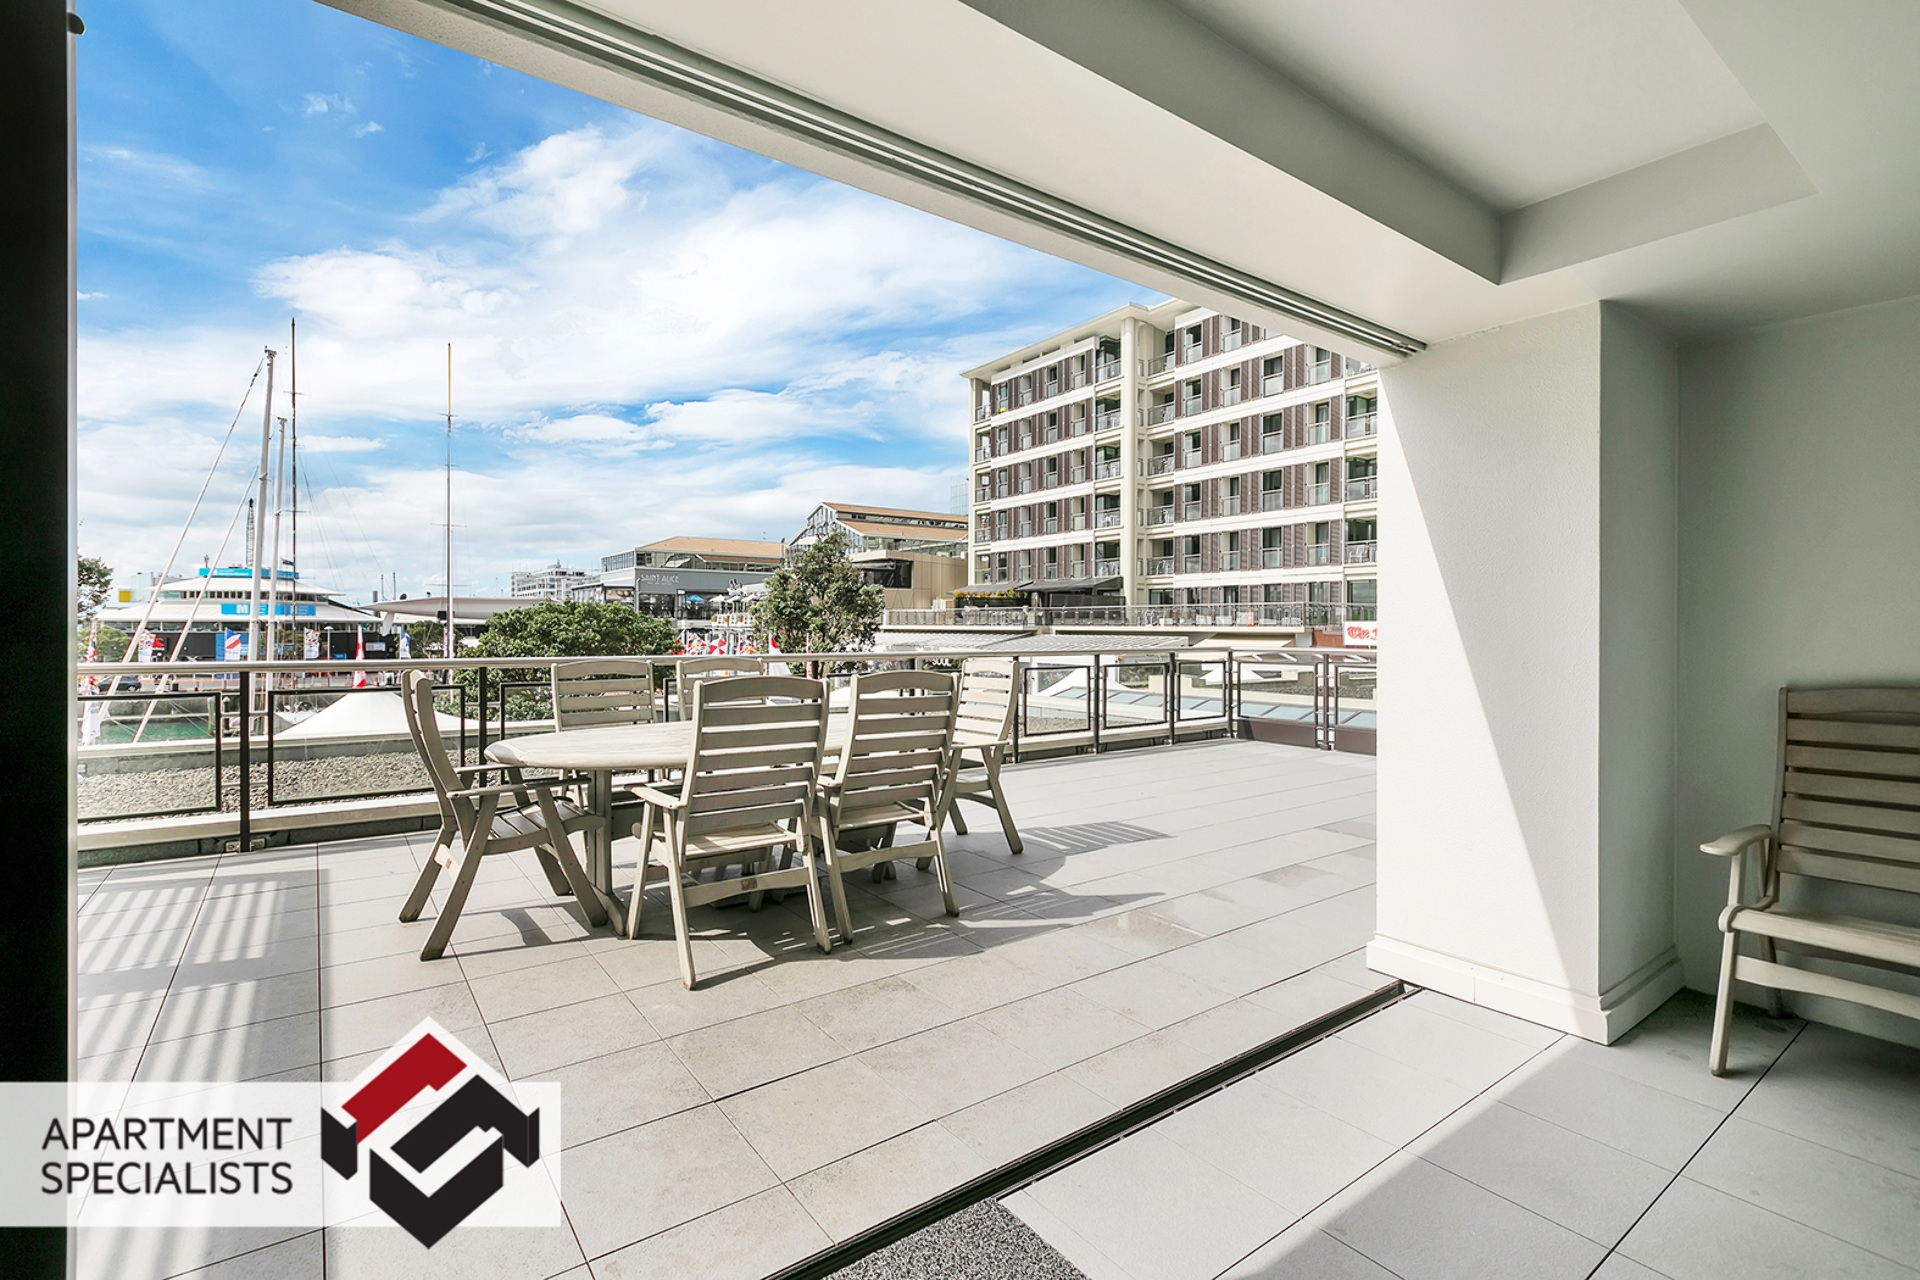 11 | 99 Customs Street West, City Centre | Apartment Specialists